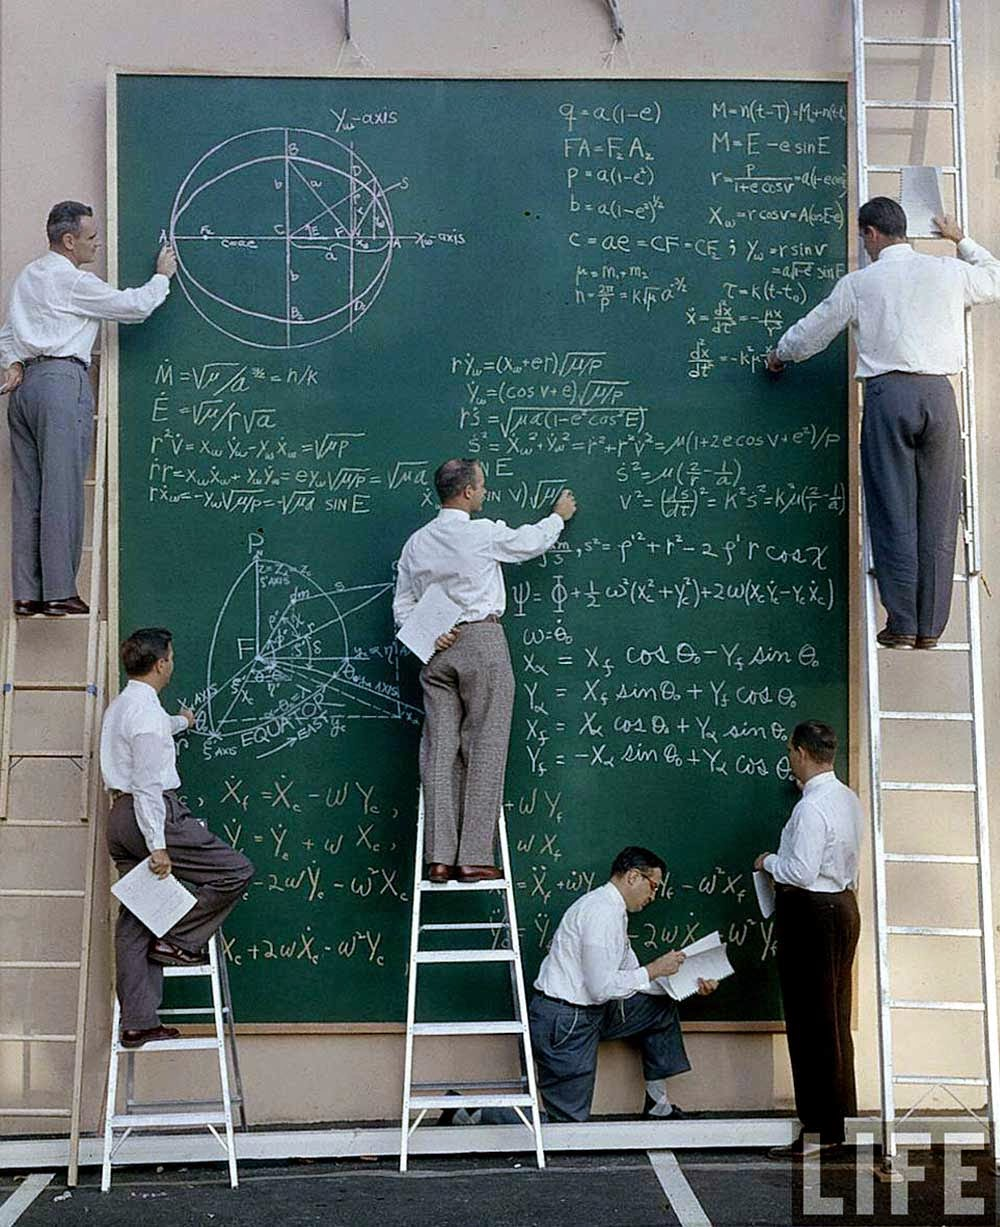 Six unidentified scientists uses a ladders and a large chalk board to work out equations for satellite orbits at Systems Labs, California, 1957.